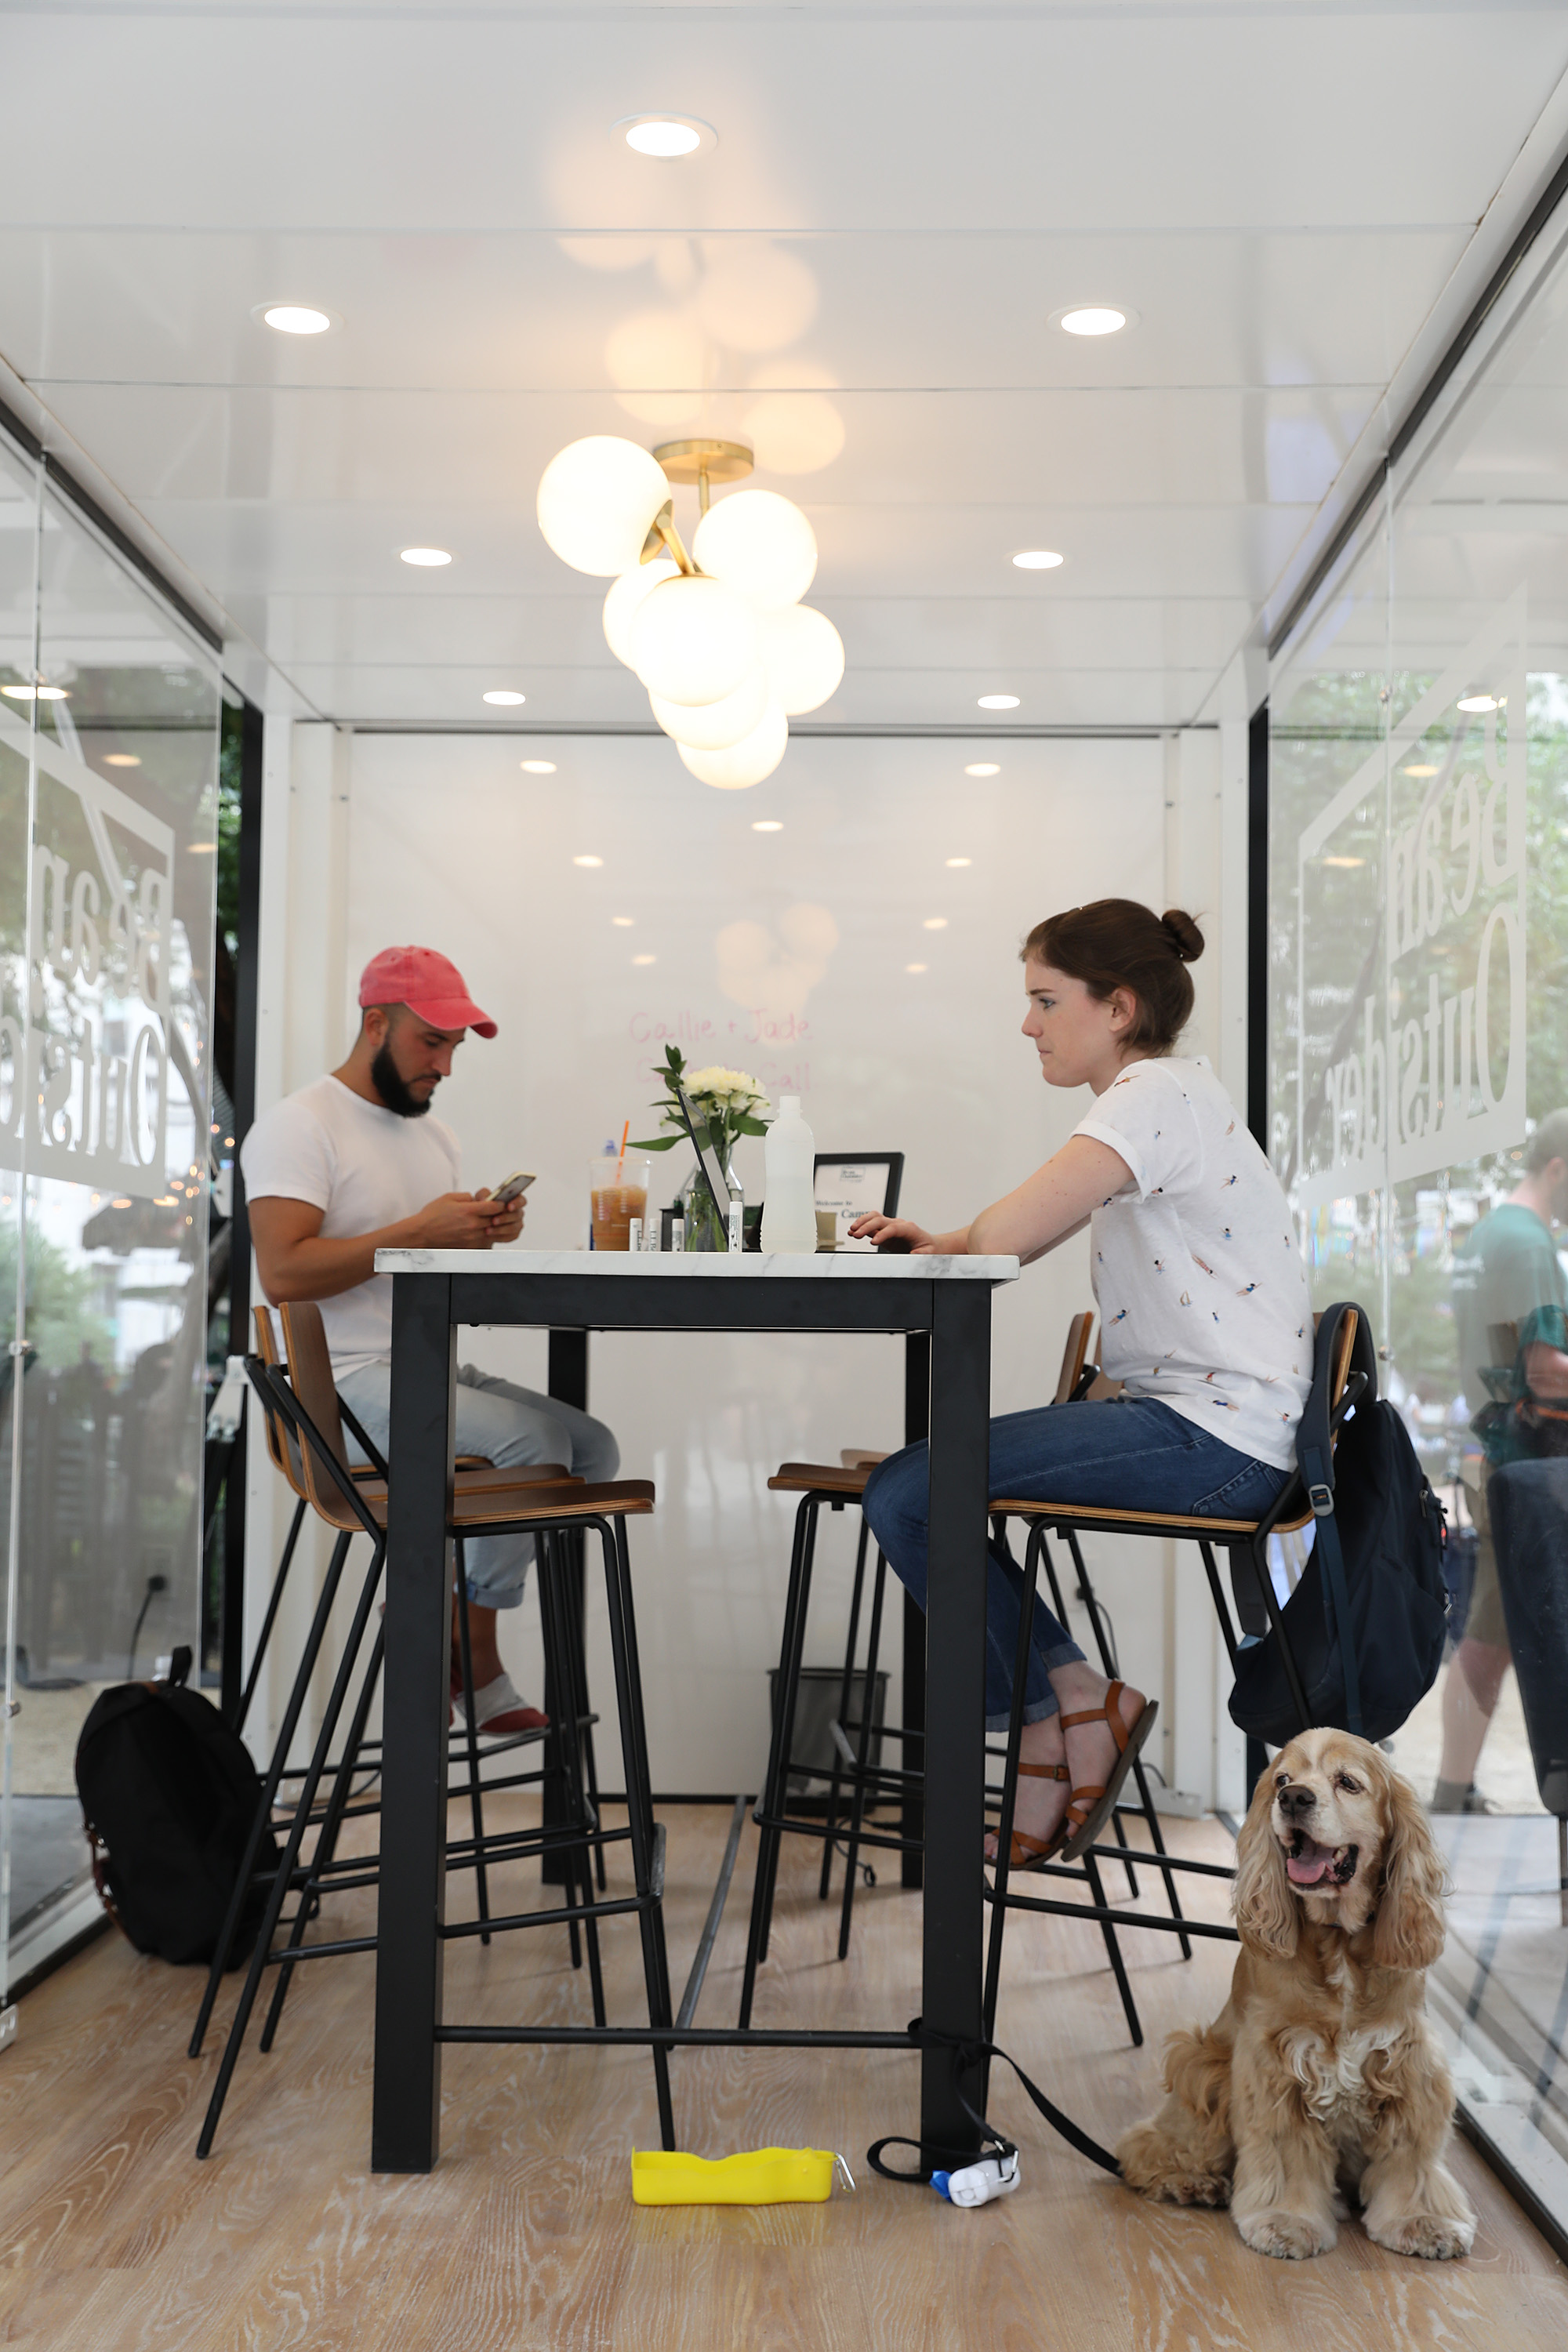 Industrious leveraged its design expertise to develop several options for coworking outdoors.